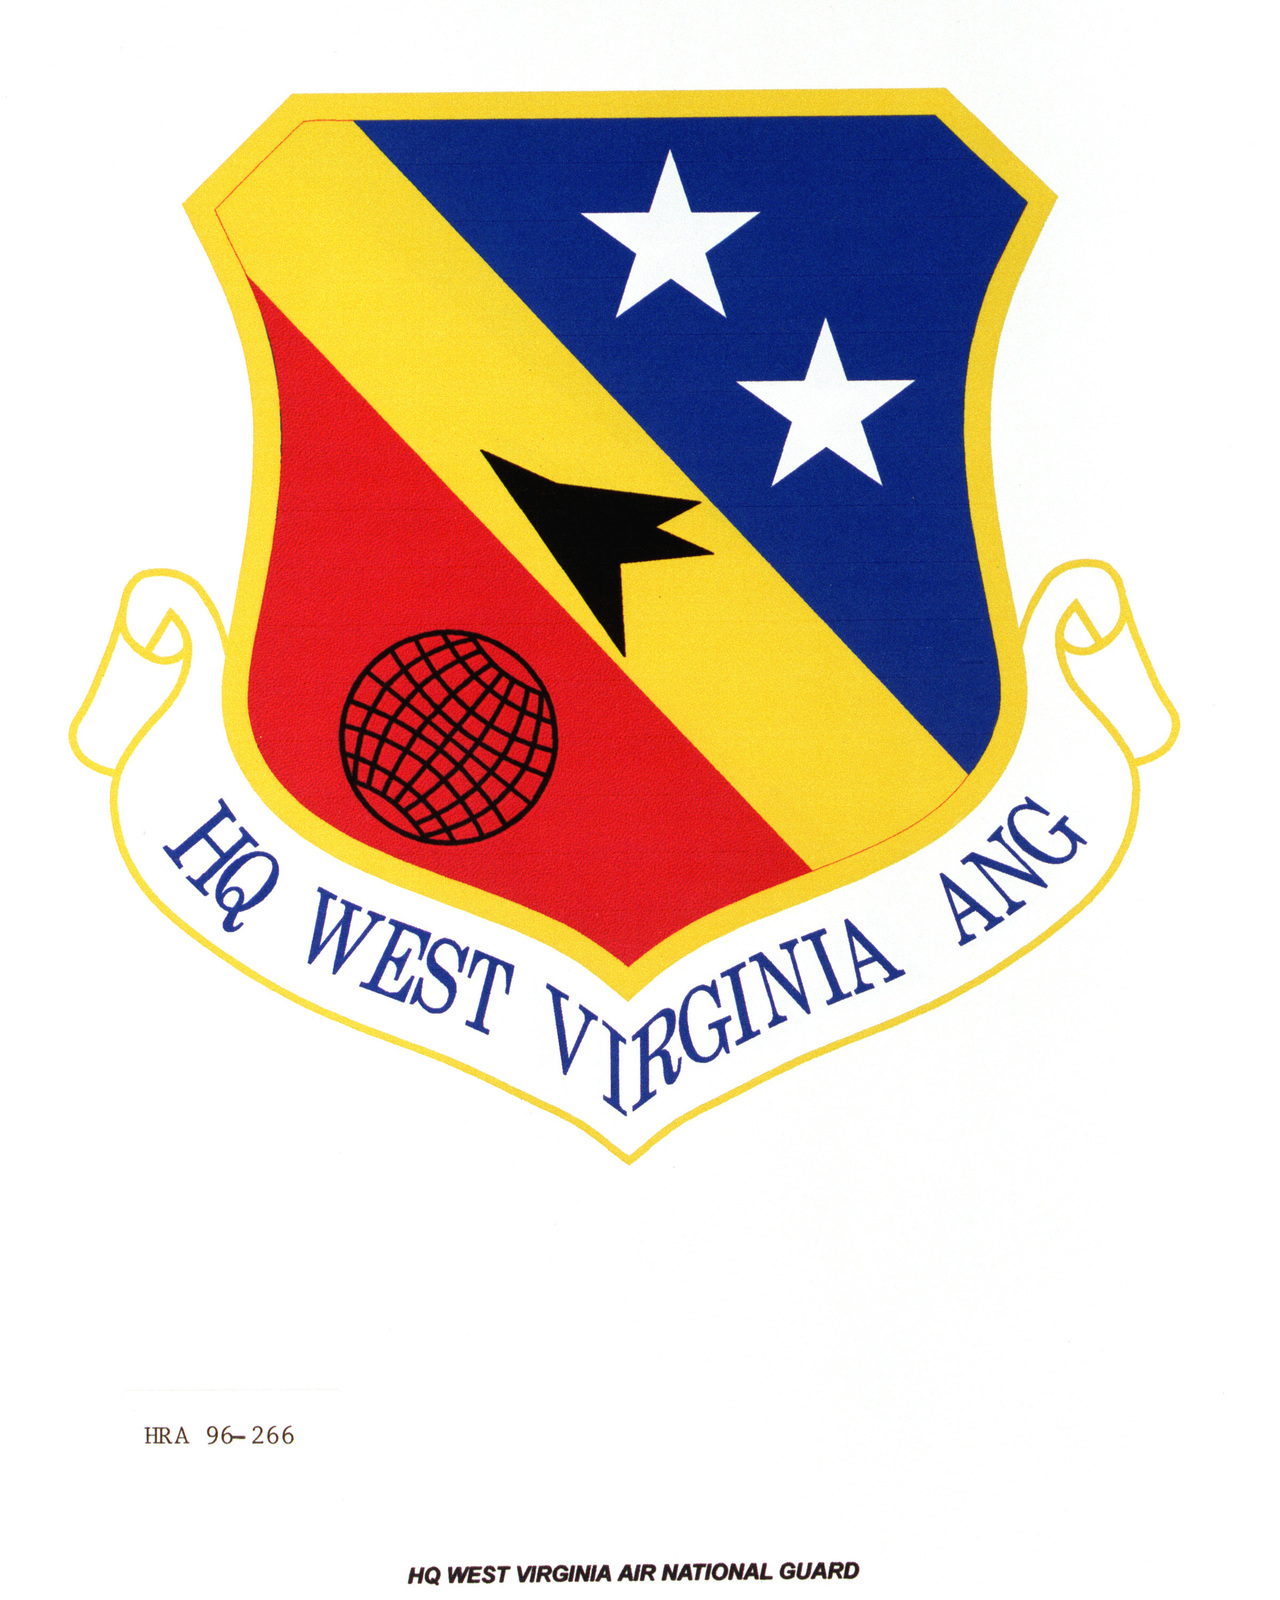 Air Force Organizational Emblem: Hq West Virginia Air National Guard (WV ANG ) Exact Date Shot Unknown